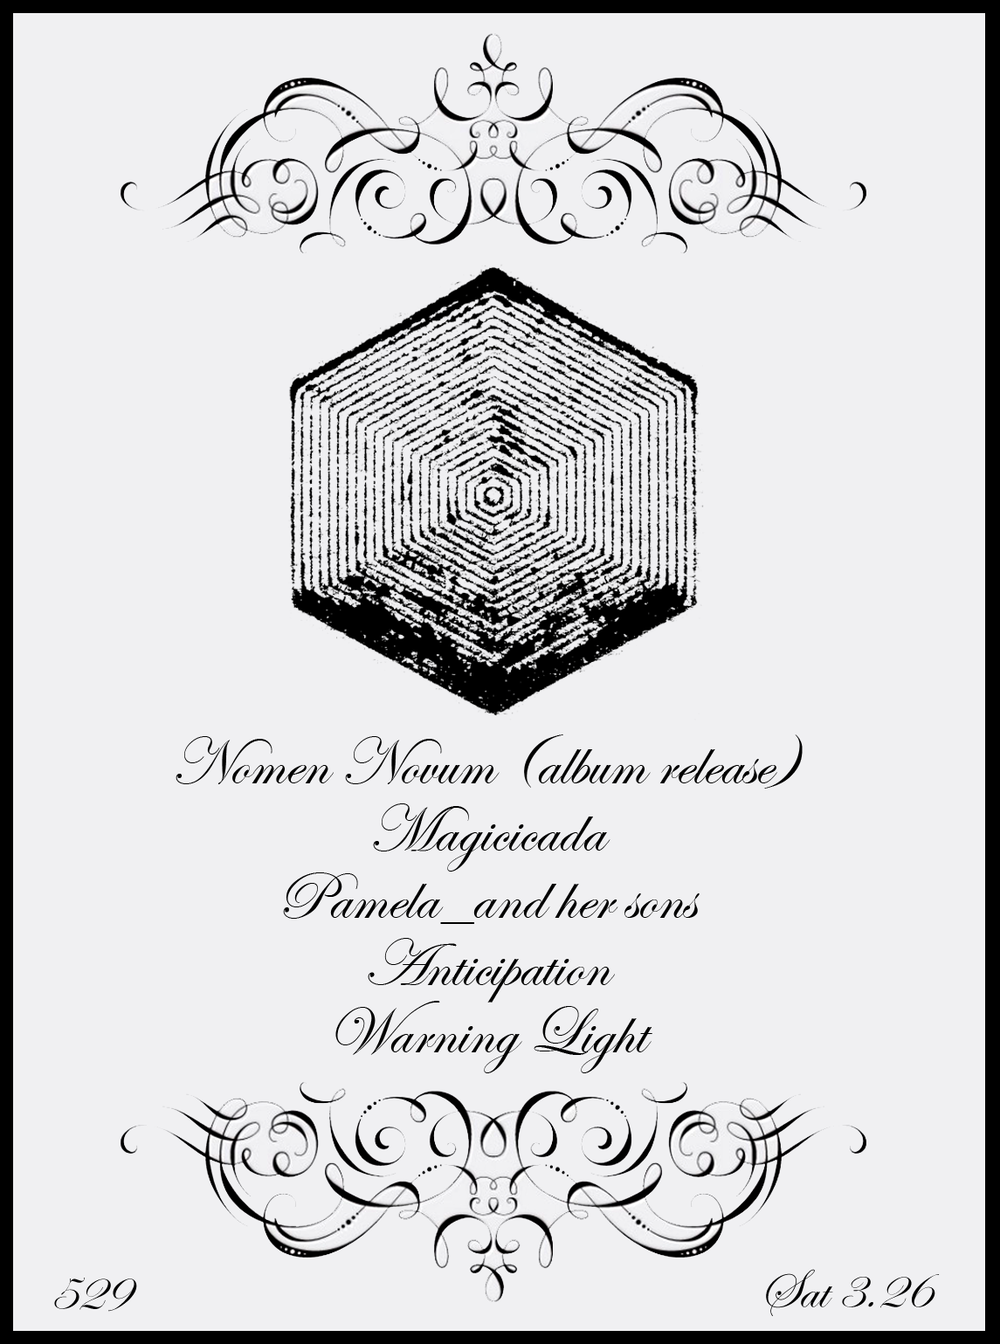 Nomen Novum releases his new album, ATLANTVM, on Deer Bear Wolf Records this Saturday night at 529 with Magicicada, Pamela_ and her sons, Anticipation, and Warning Light.